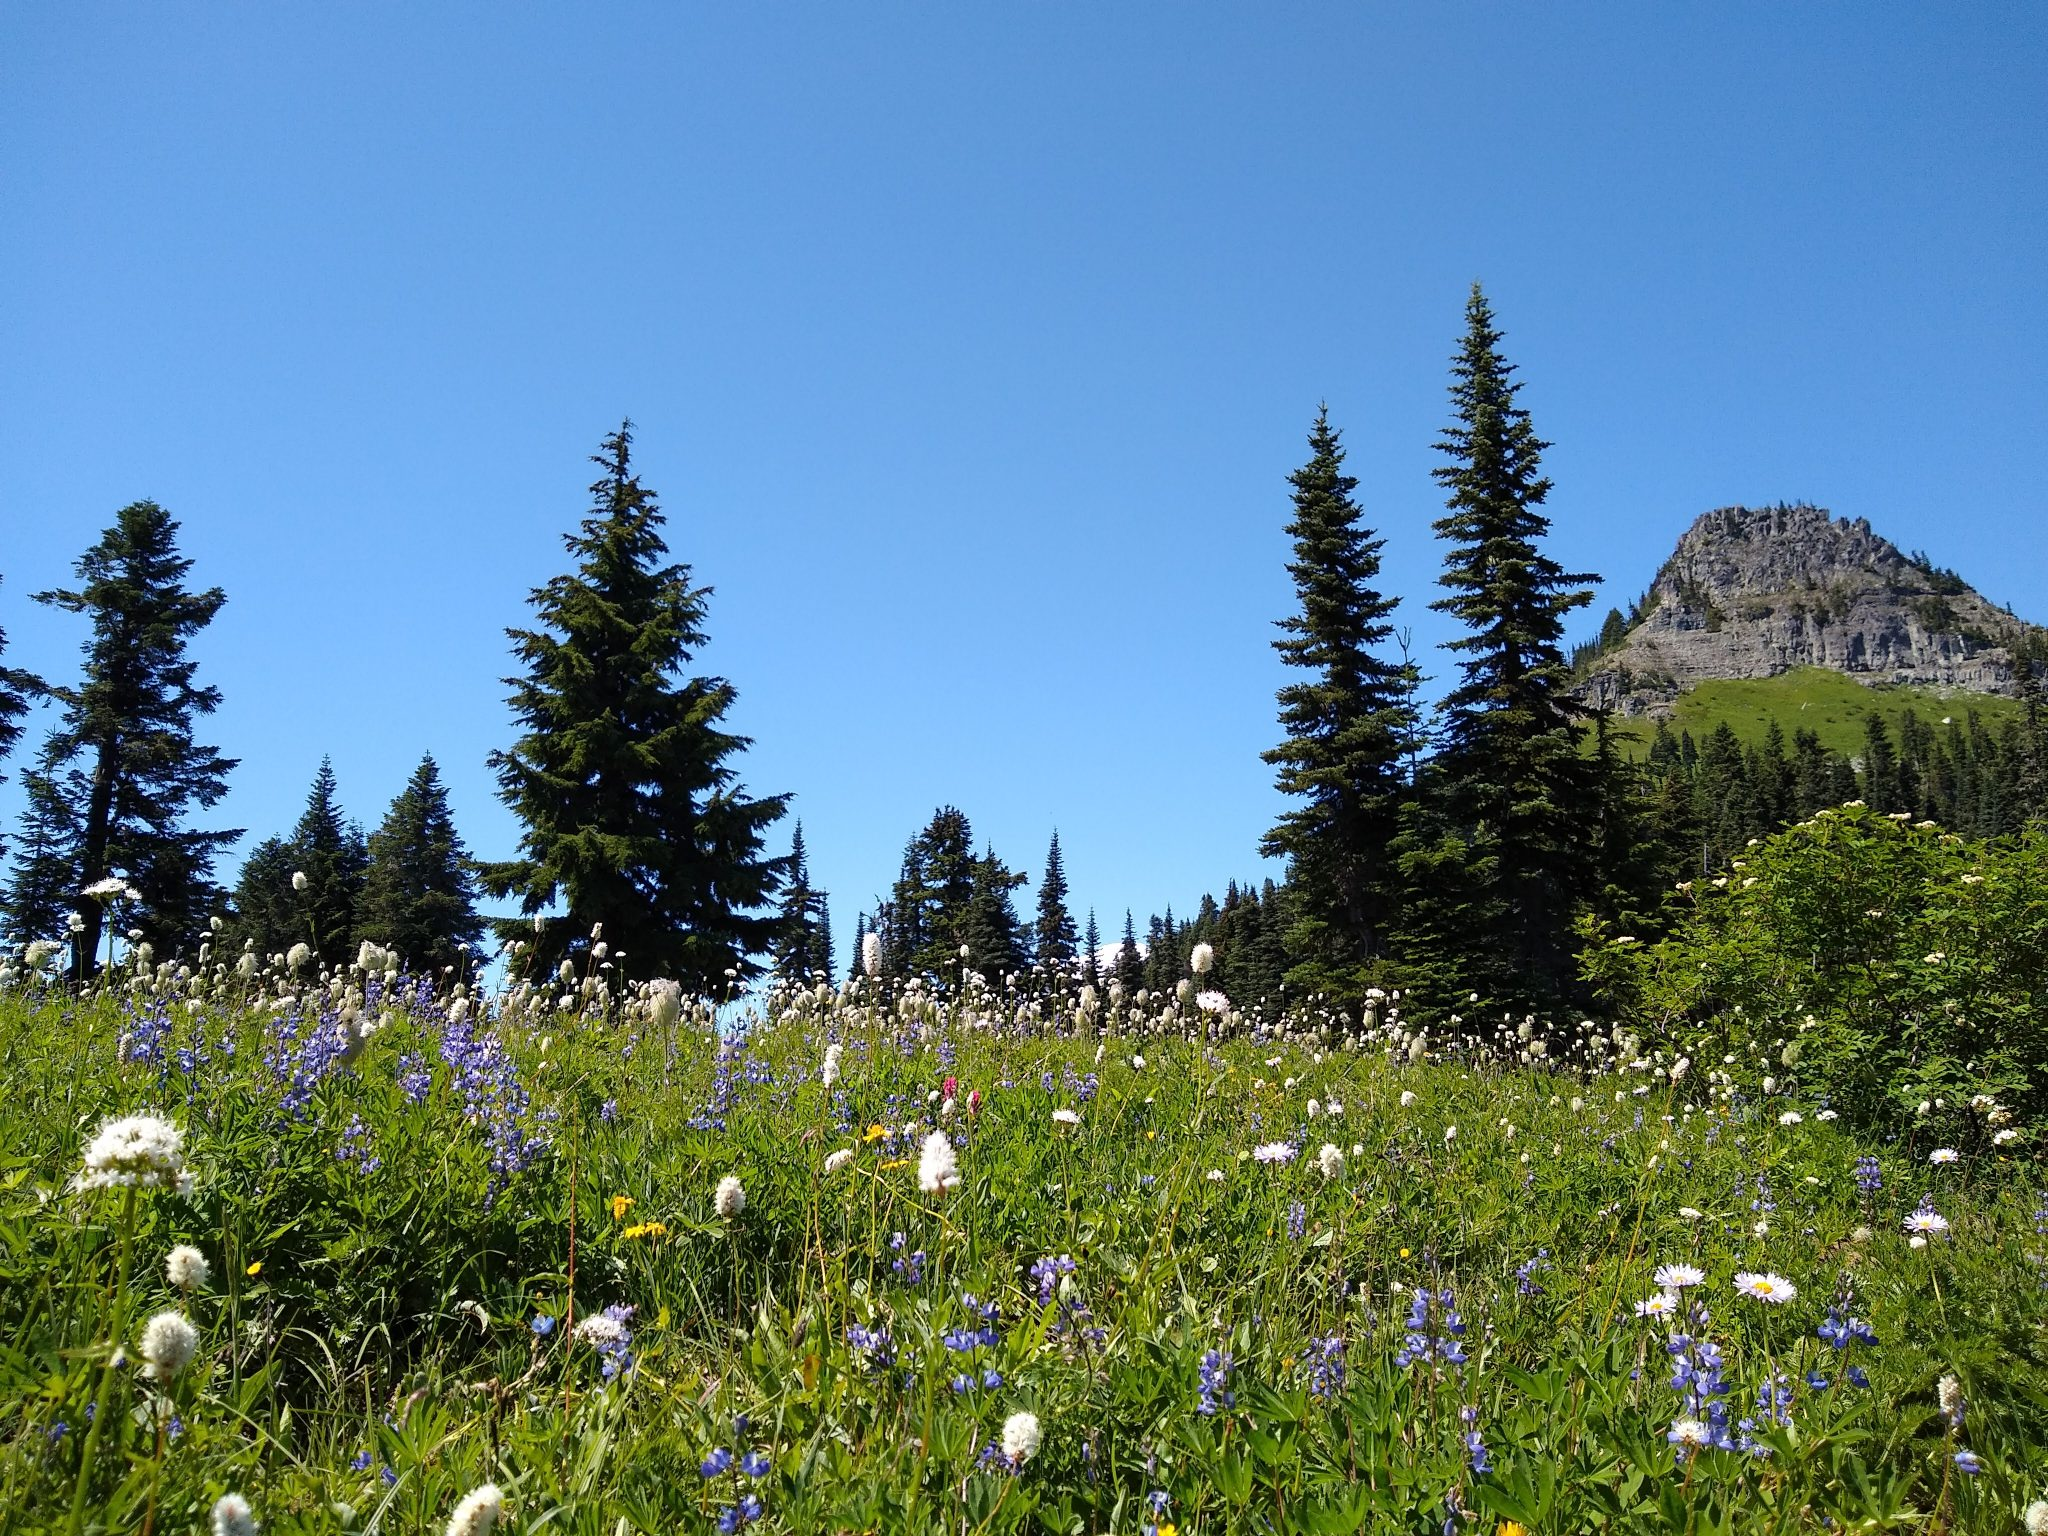 Mt Rainier wildflower hikes with wildflowers in the foreground and evergreen trees in the background against a blue sky